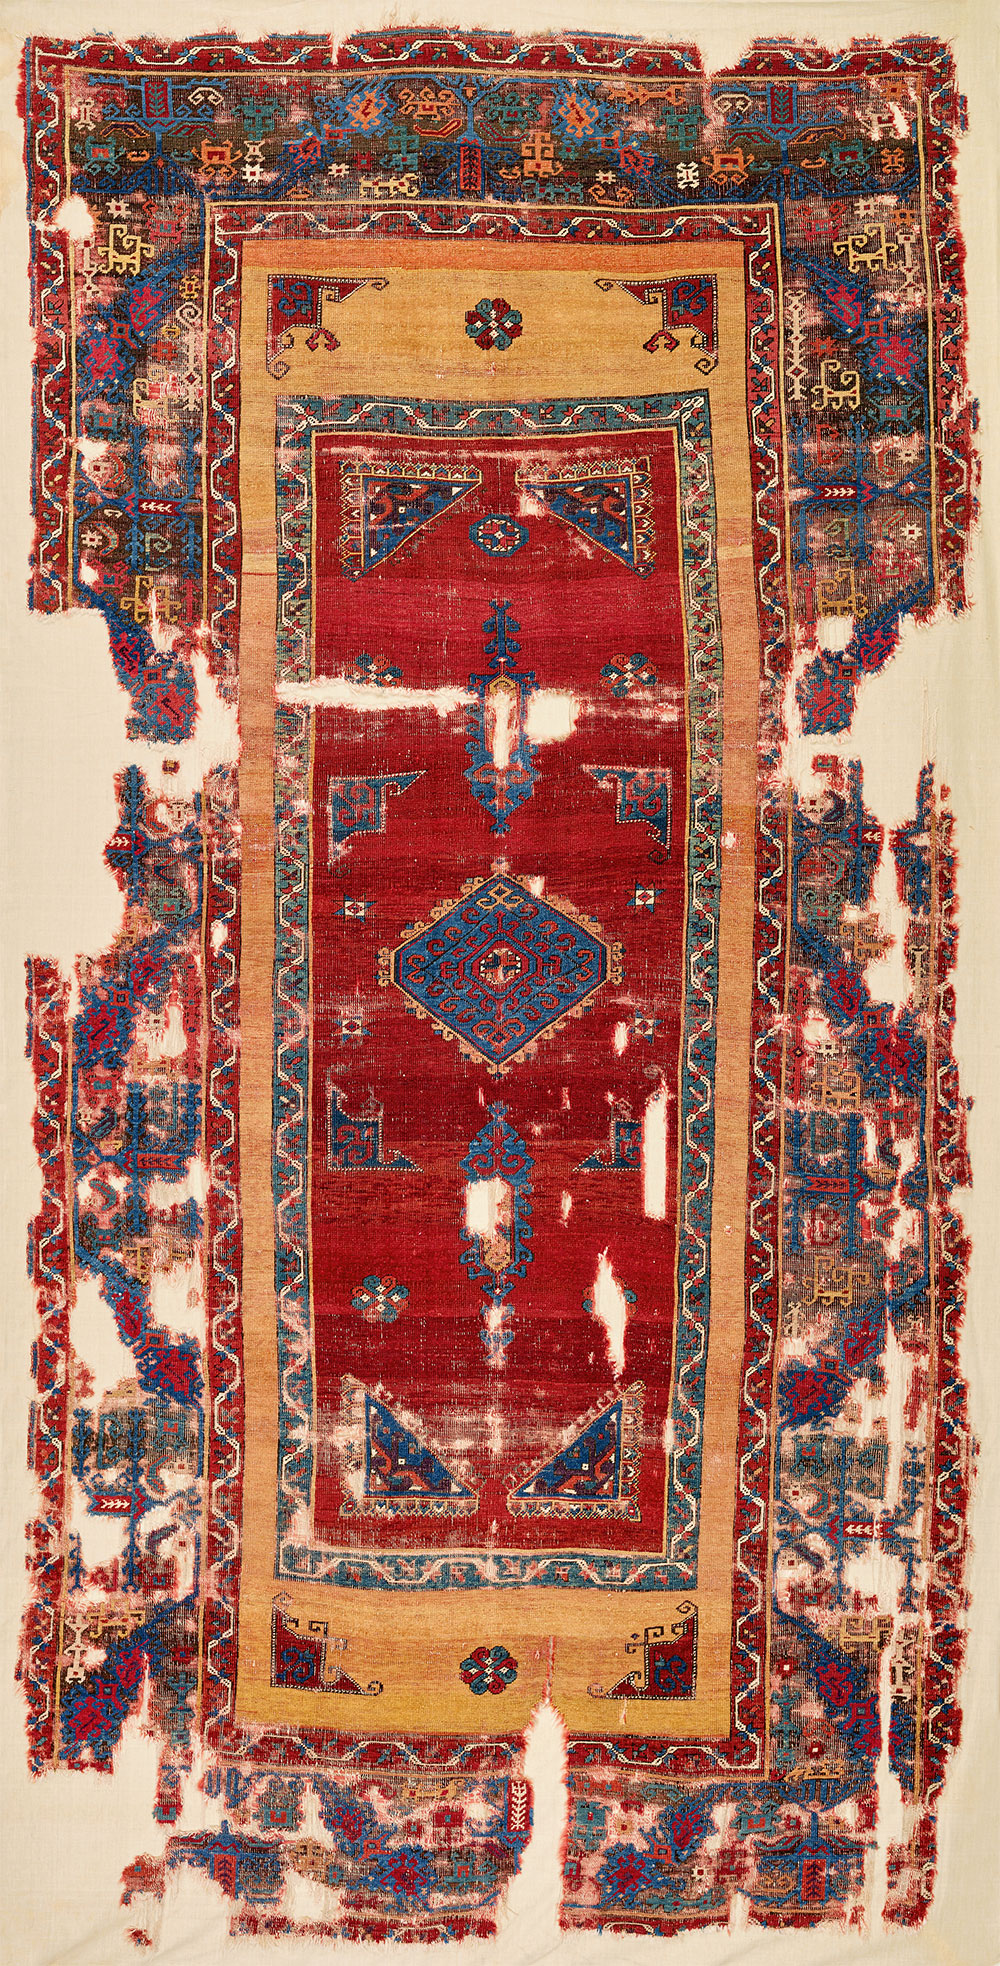 """1-2 'Field within field' design carpet with a 'fabulous creatures' border (and border detail), west Anatolia, ca. 1475–1525. Wool pile on a wool foundatio1n, 1.71 x 3.43 m (5' 7"""" x 11' 3""""). Kirchheim Family Collection, Hannover. Published Orient Stars, Stuttgart, 1993, pl.197. The author has personally examined all but one of the carpets illustrated in this article"""